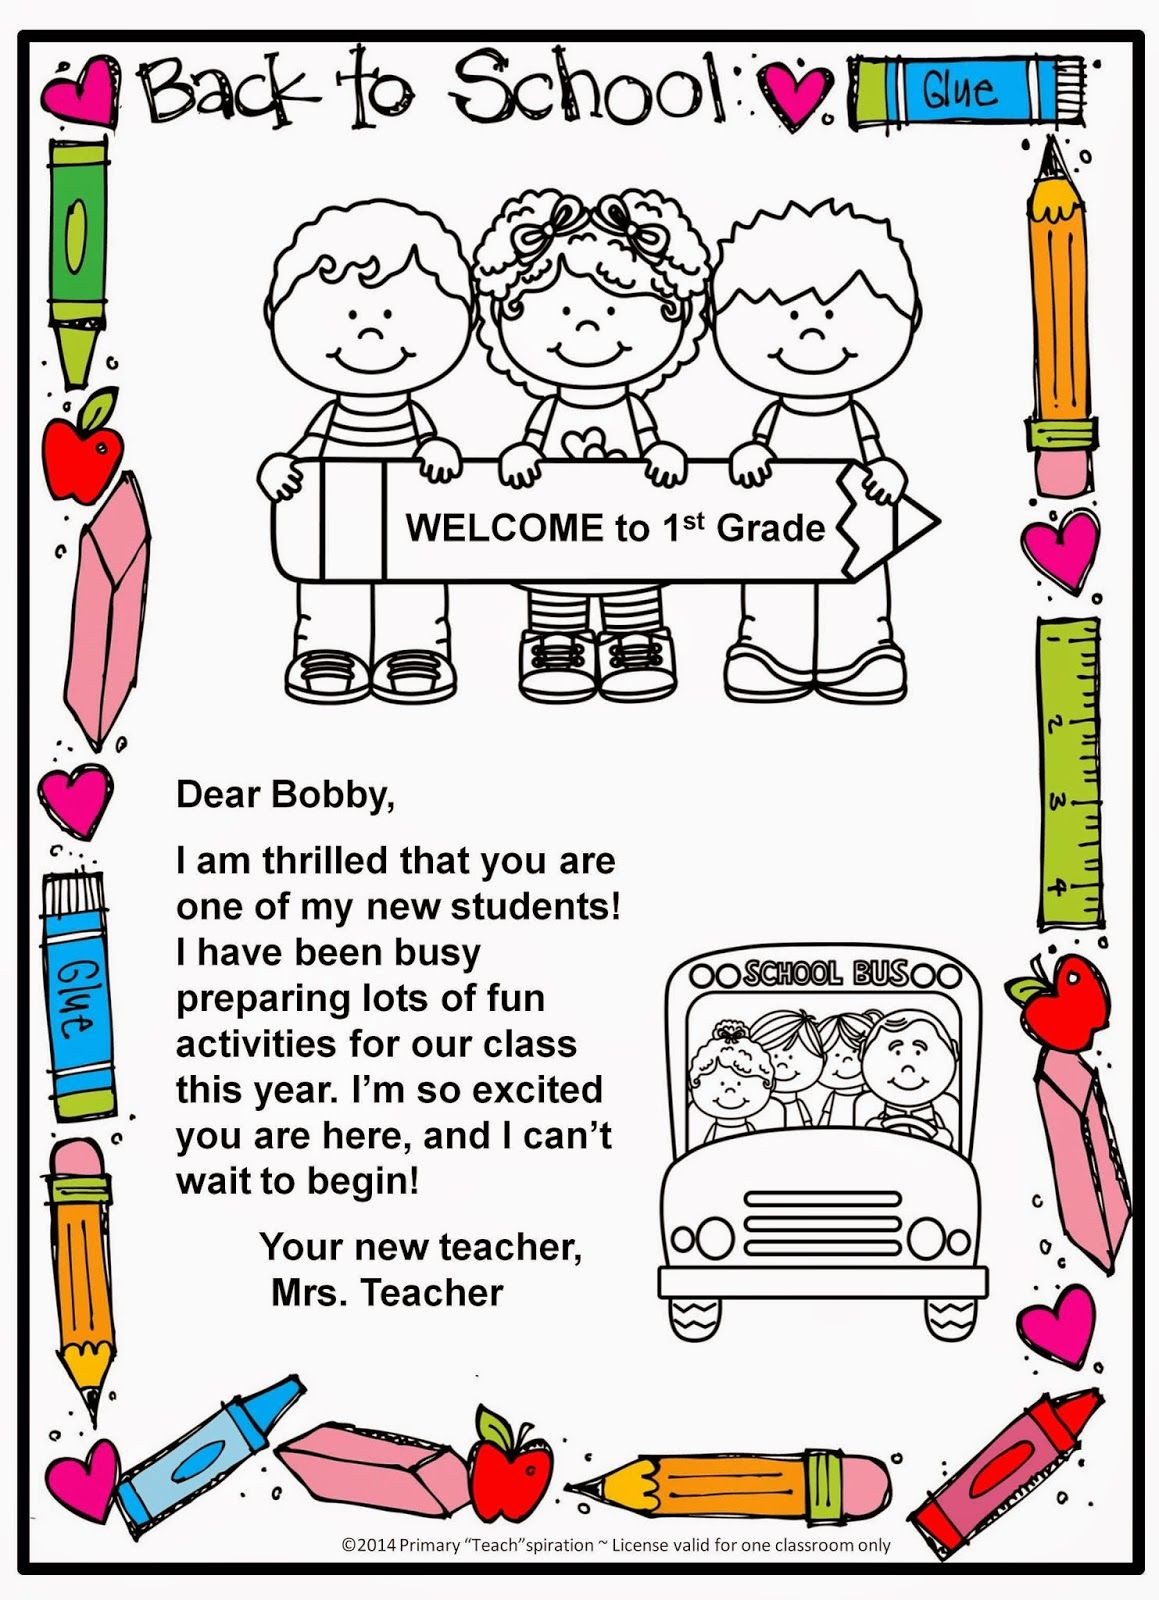 Back to School Wel e Letter and Postcard Pinterest